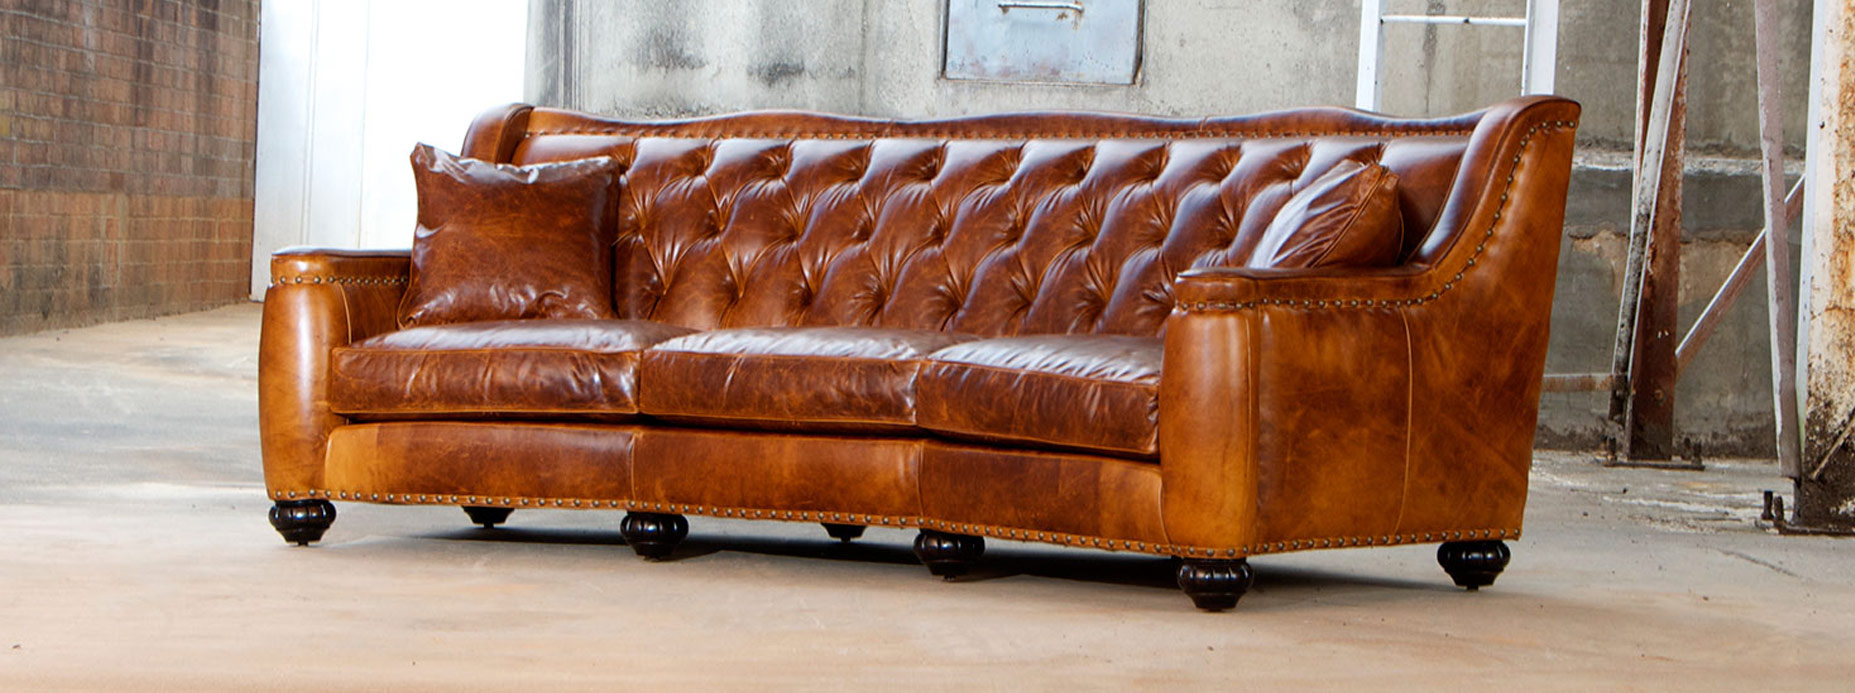 Clic Leather Furniture